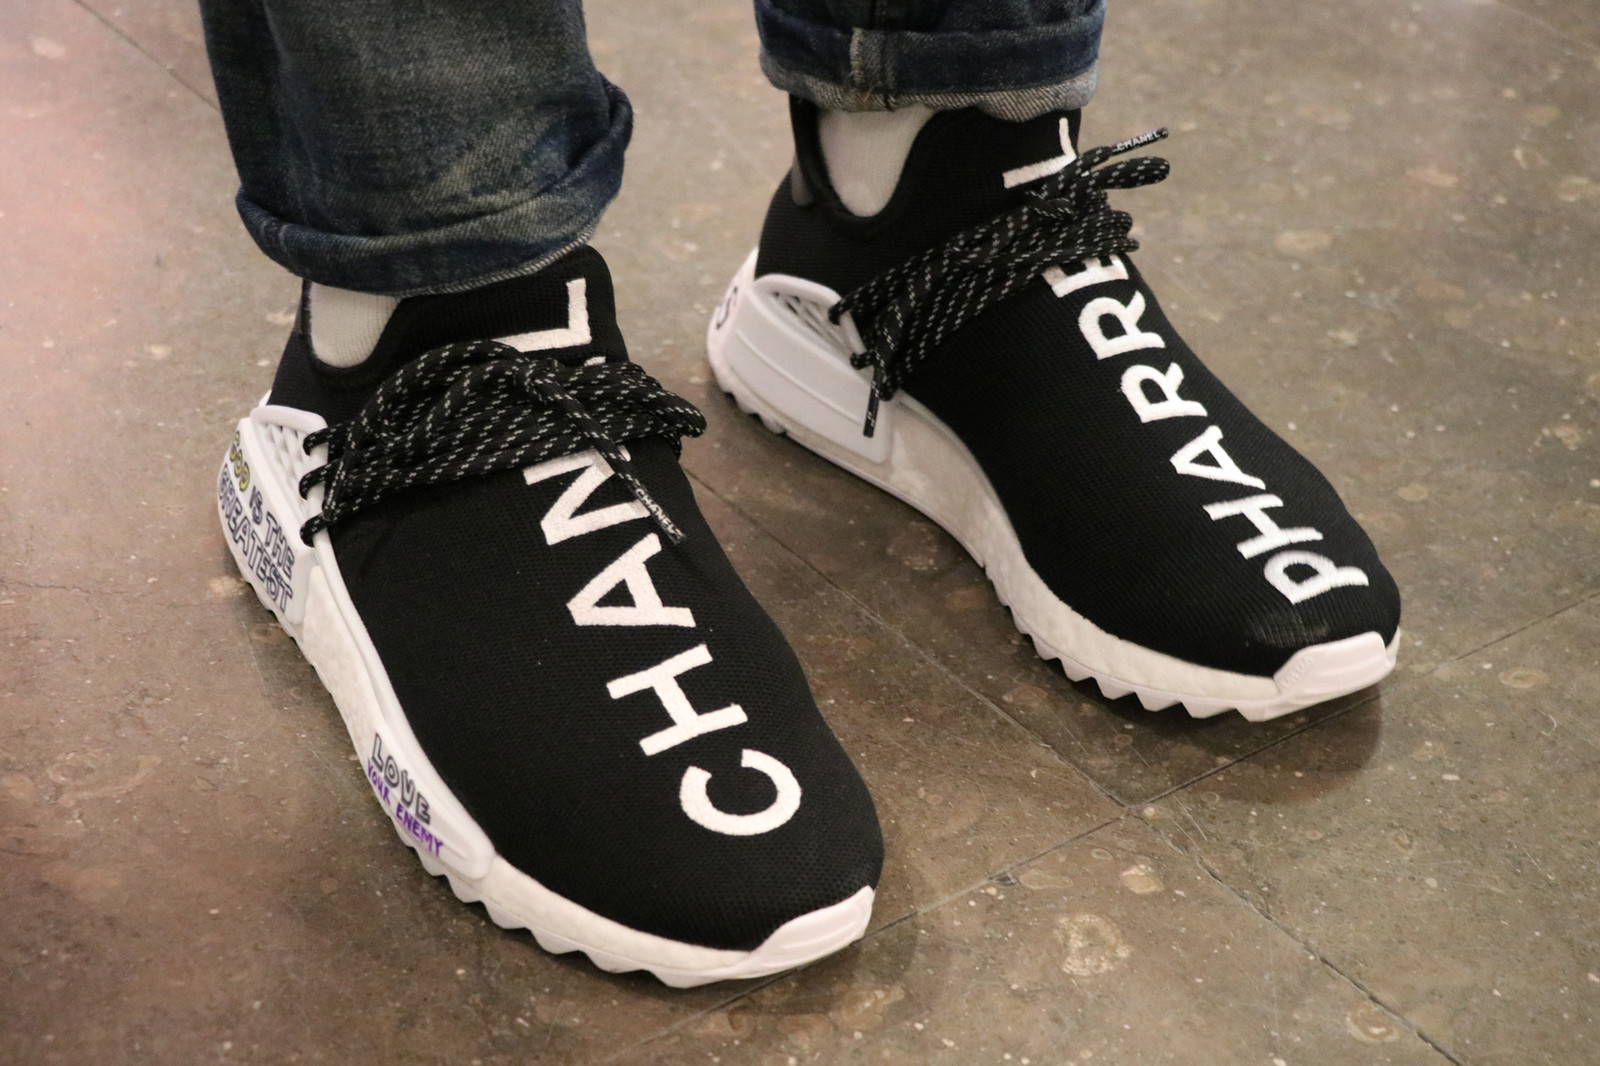 half off d73be ebf37 Chanel x adidas Originals Hu NMD On-Feet Look | HYPEBEAST